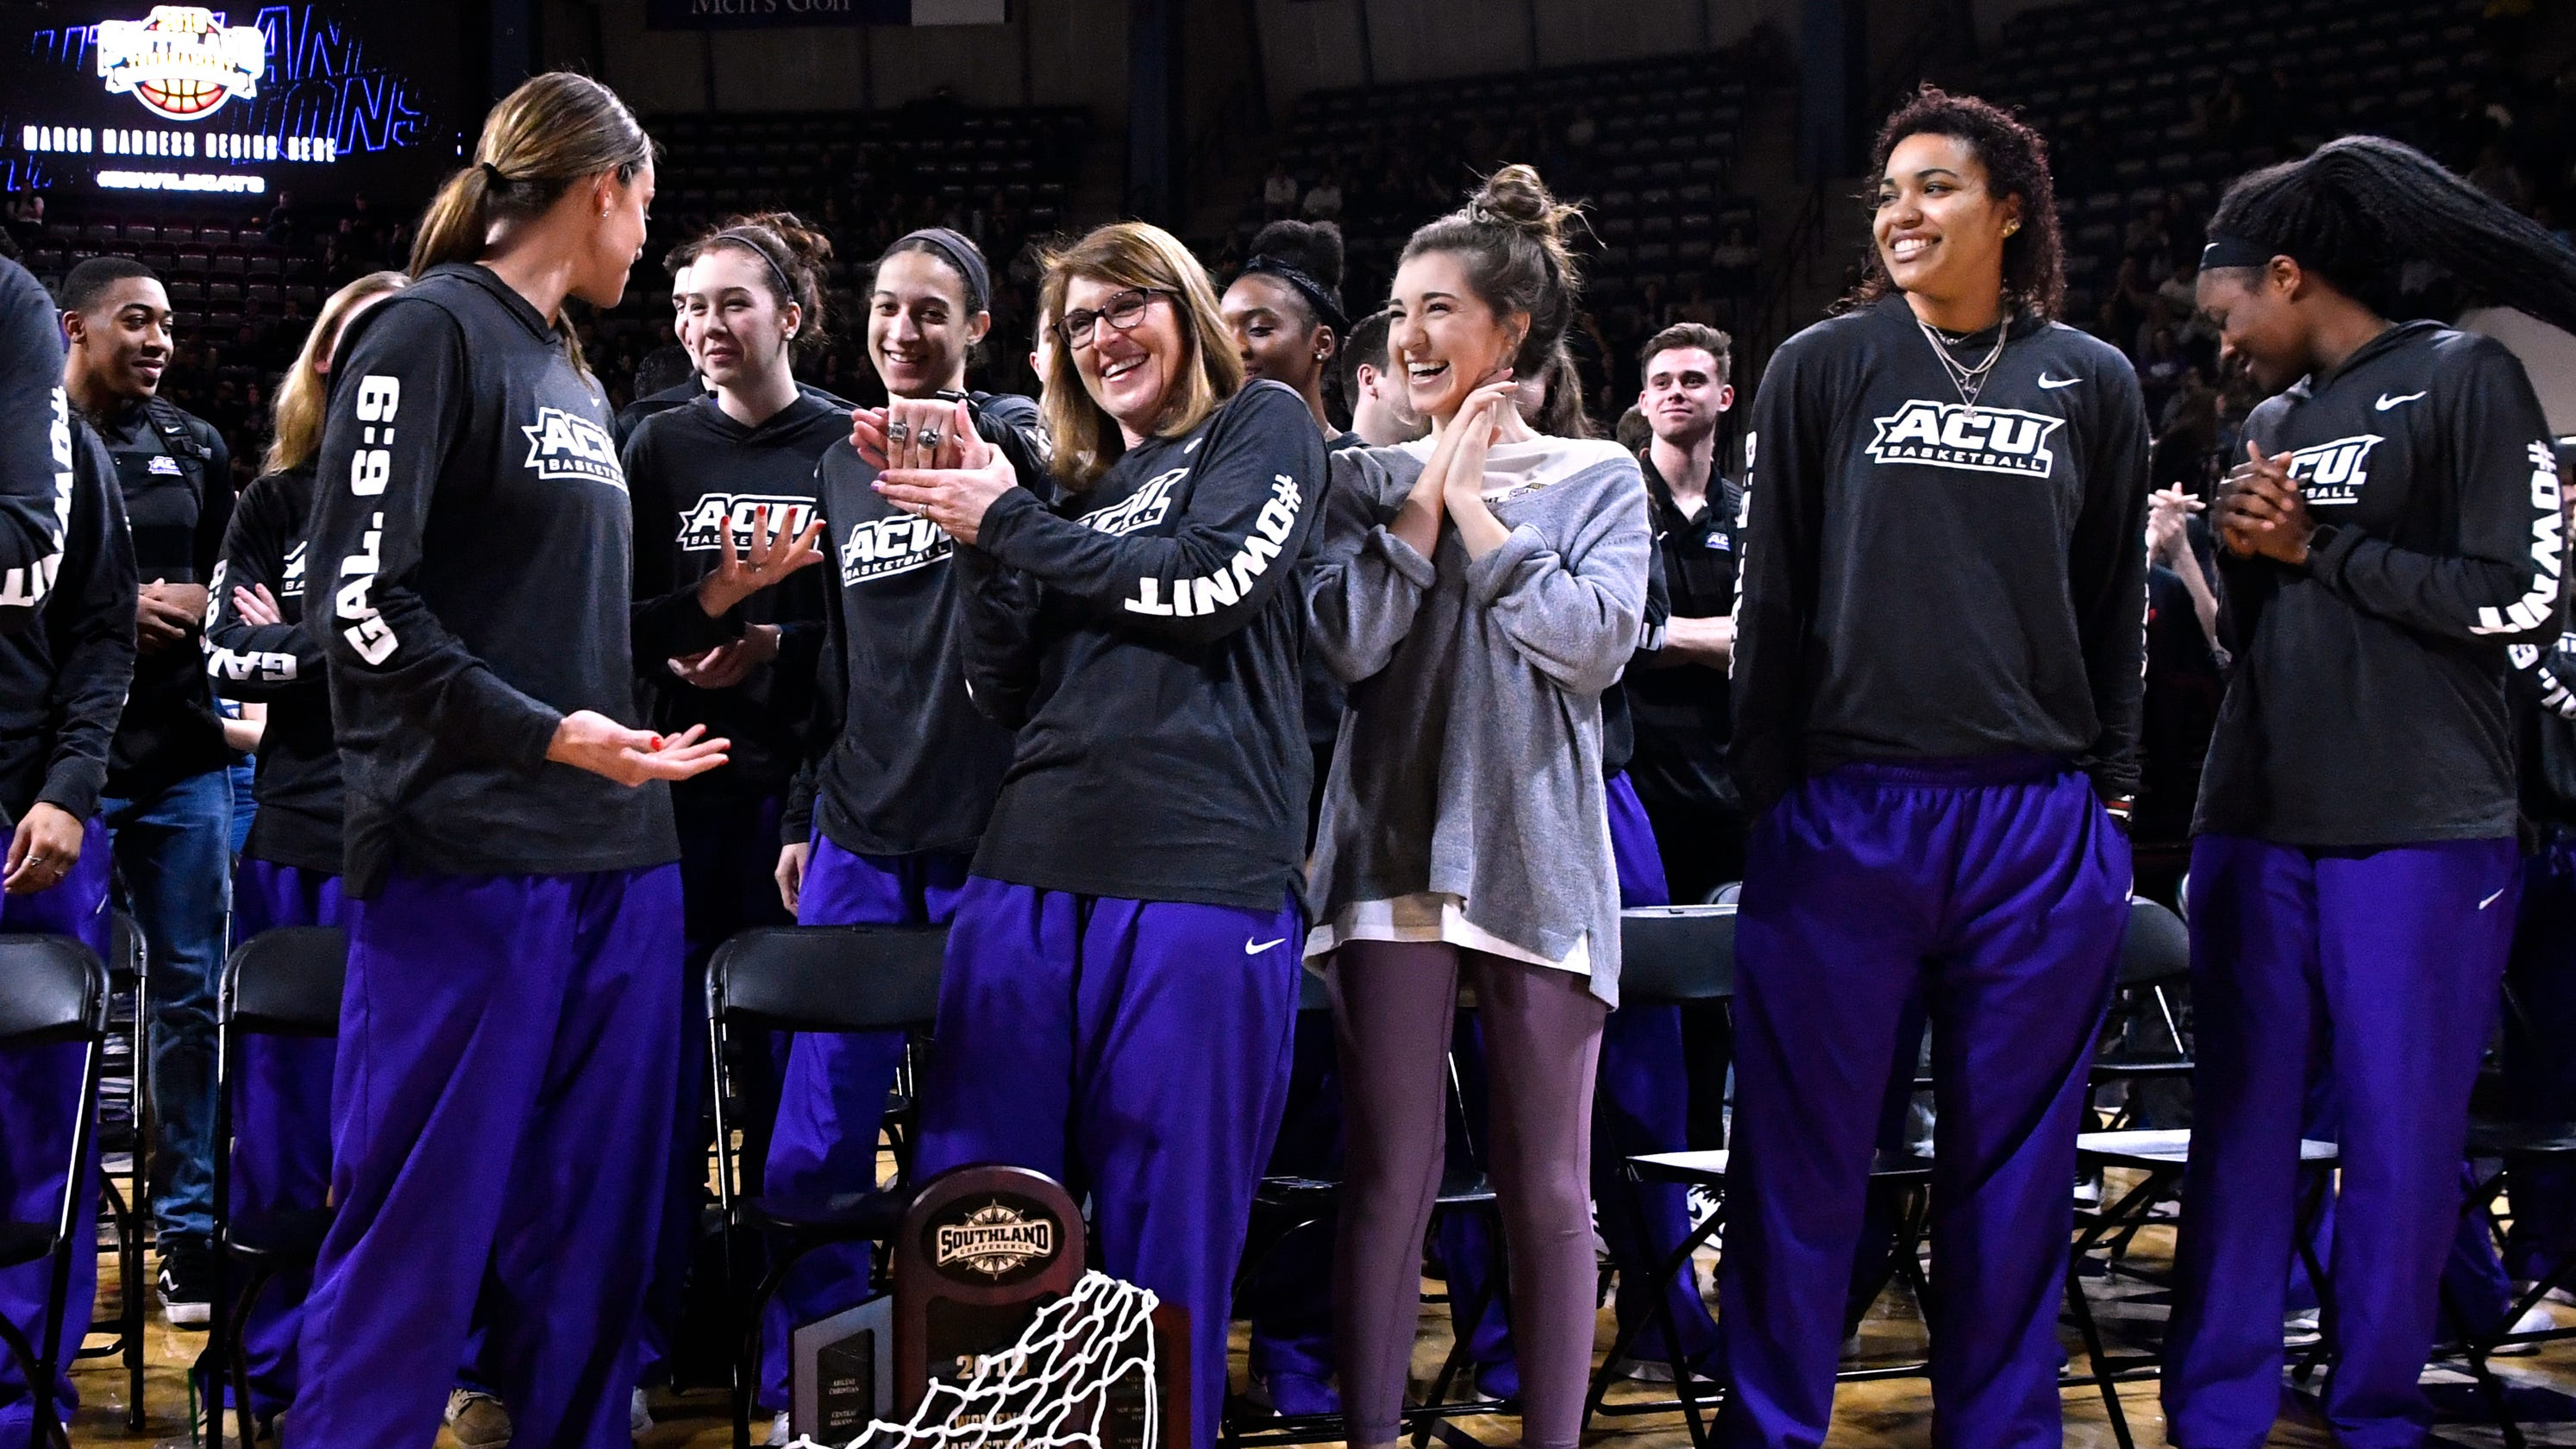 Pride, excitement as Abilene Christian campus enjoys first NCAA March Madness (multiplied by two)